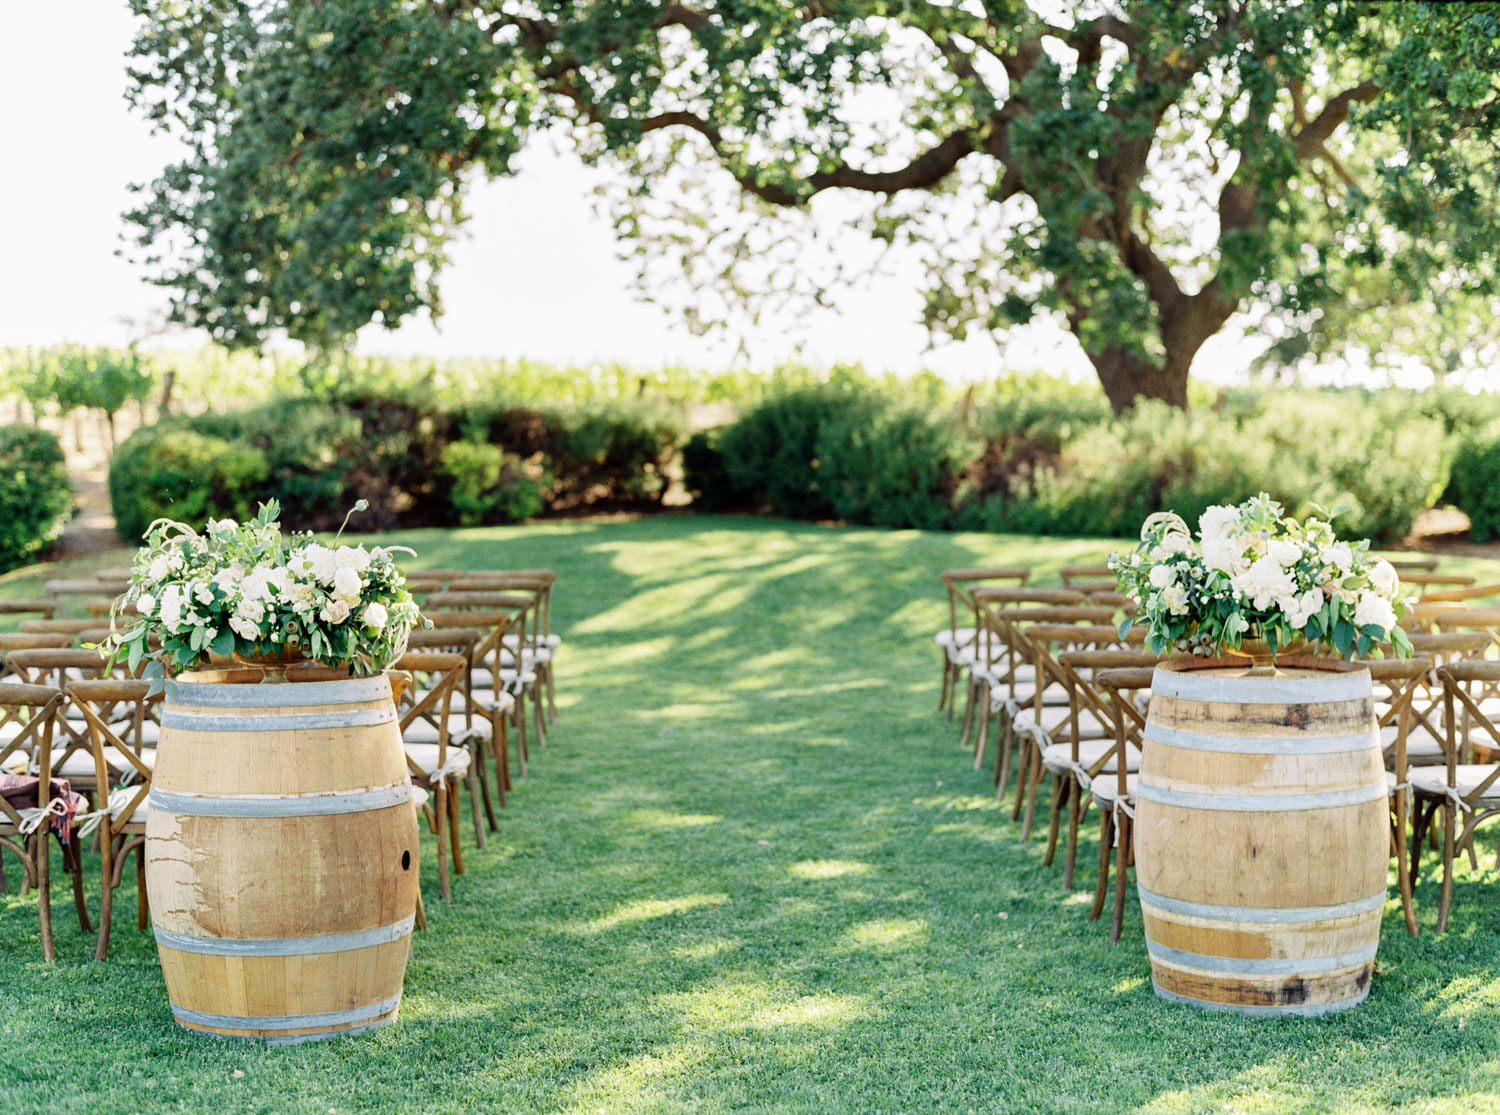 Wedding ceremony on lawn with large tree and arrangements on barrels with white and green bouquet with trailing ribbons captured on medium format film, Cavin Elizabeth Photography